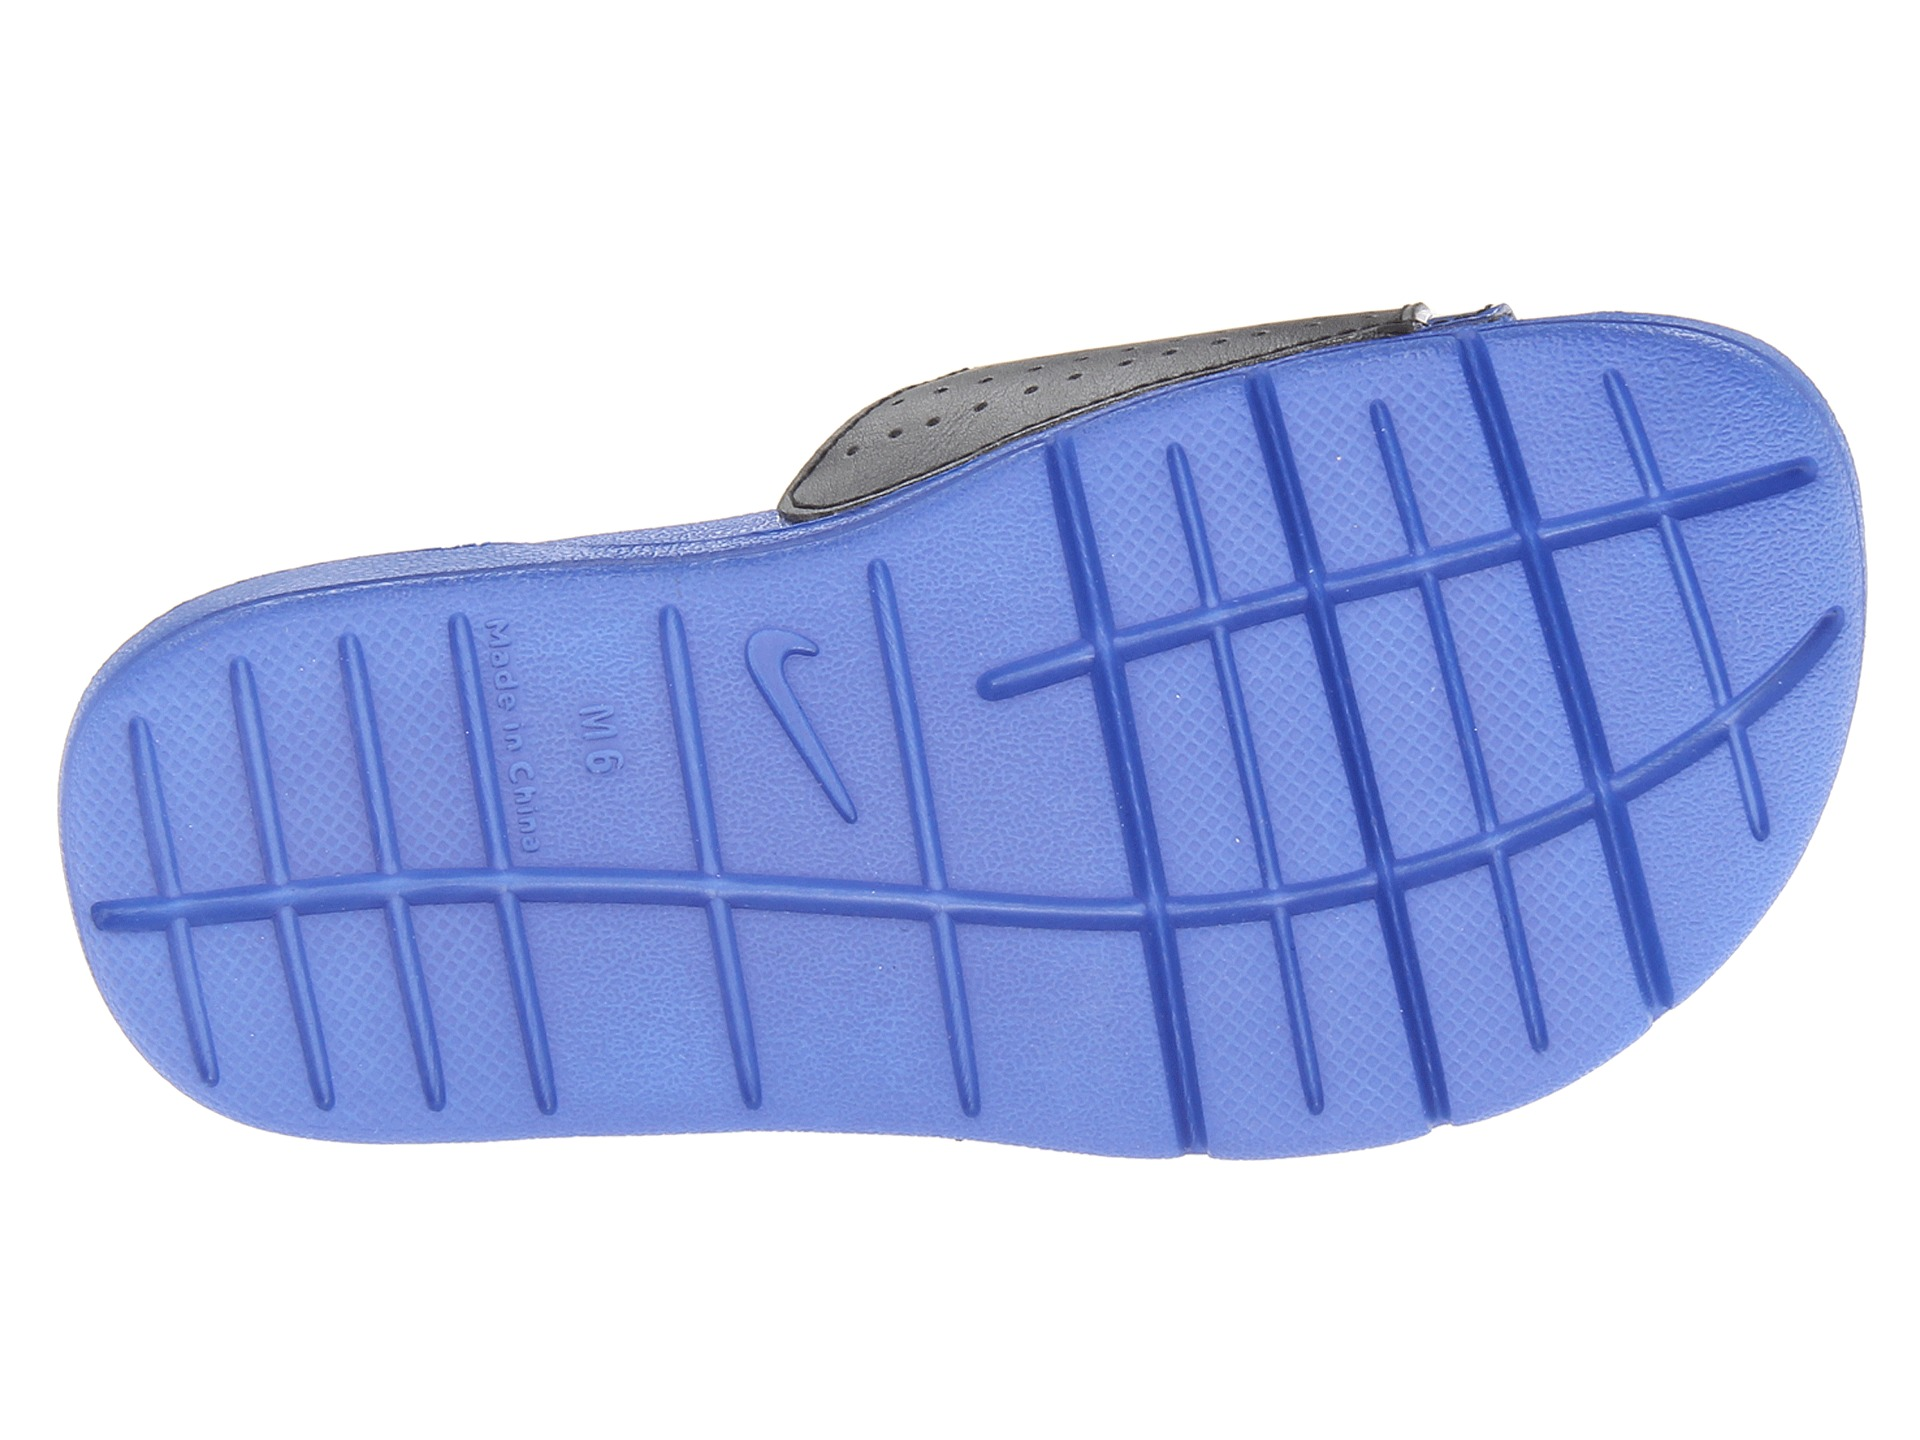 ef5d8ebe3626 Nike Comfort Slide 2 Game Royal Black White on PopScreen